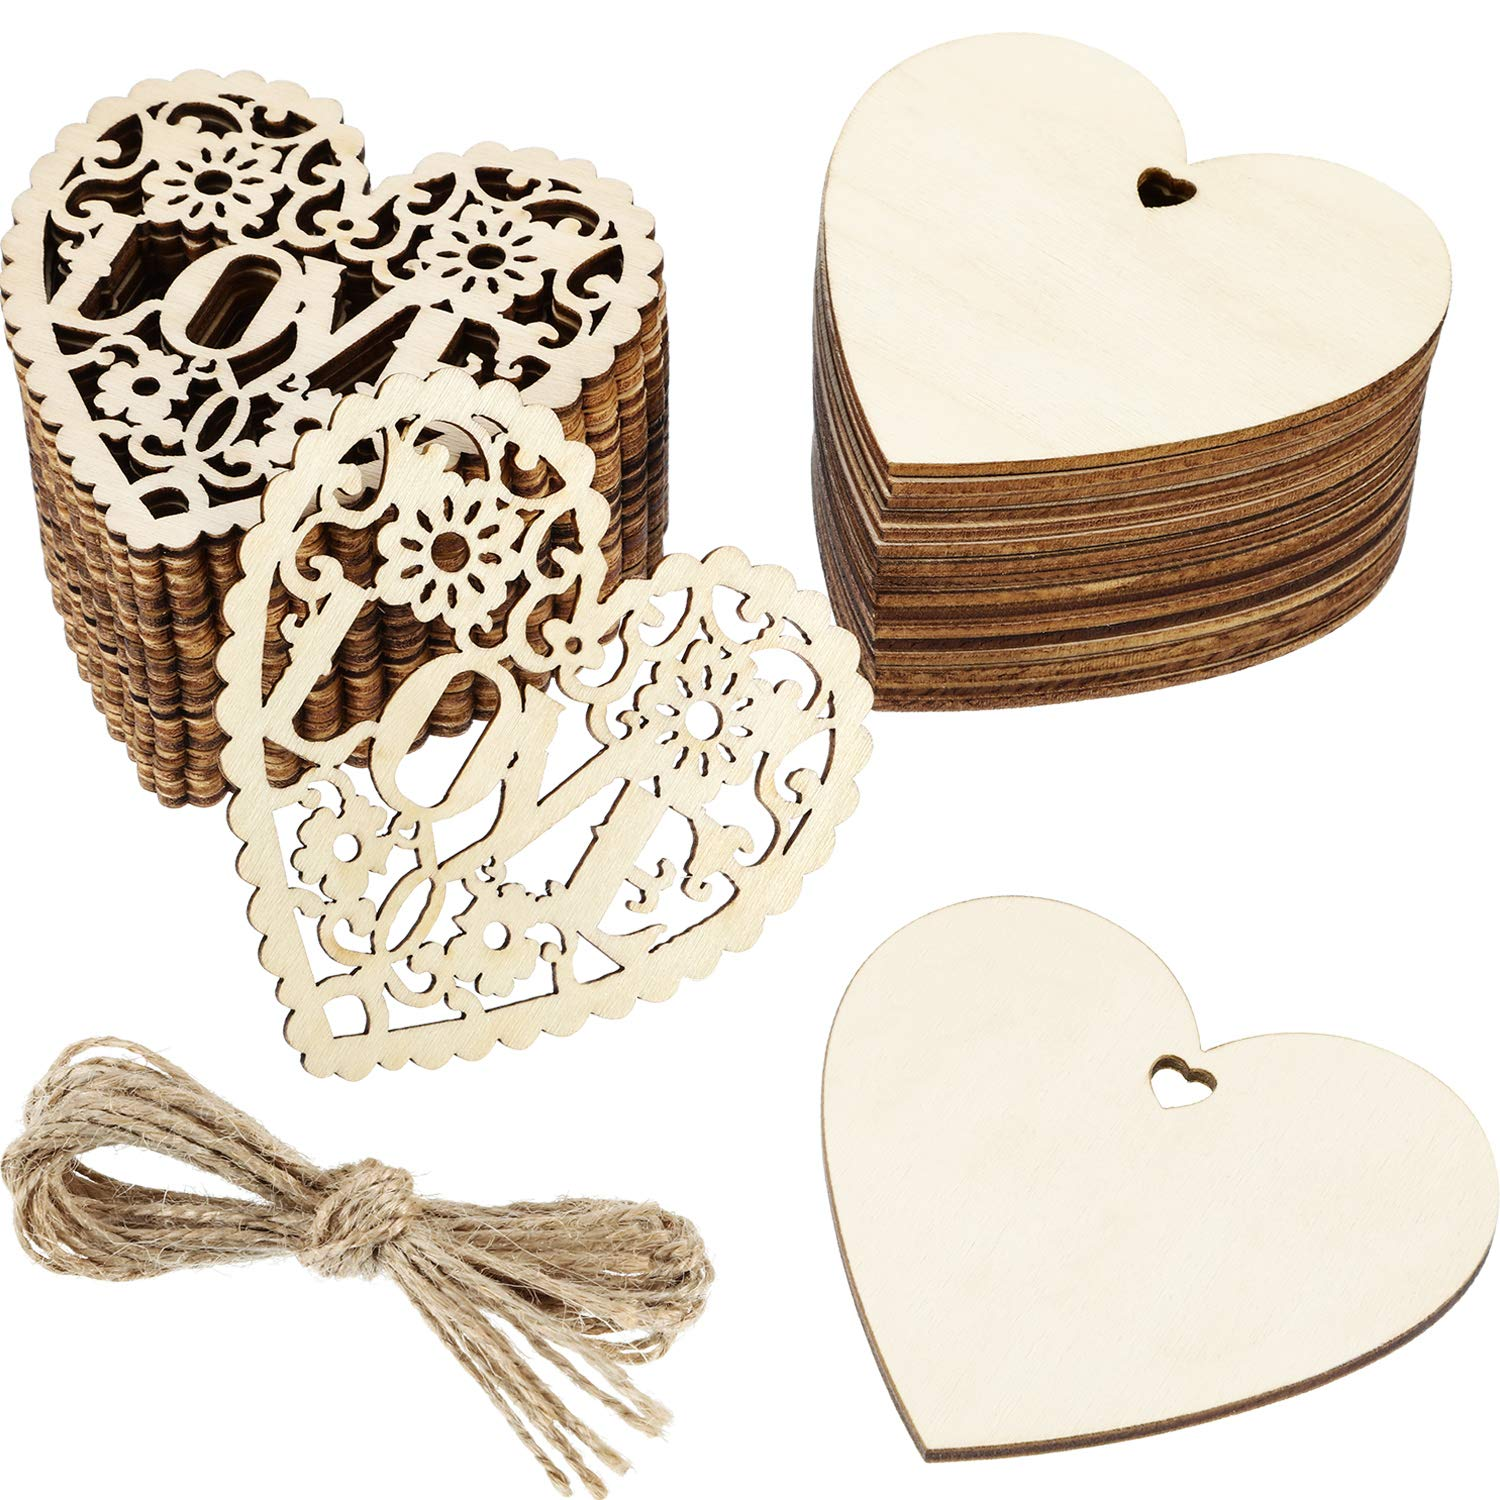 Wooden Hearts Shape Craft Hanging Tag Decoration Gift  Laser Cut With Hole MG000007 10pcs. 10cm